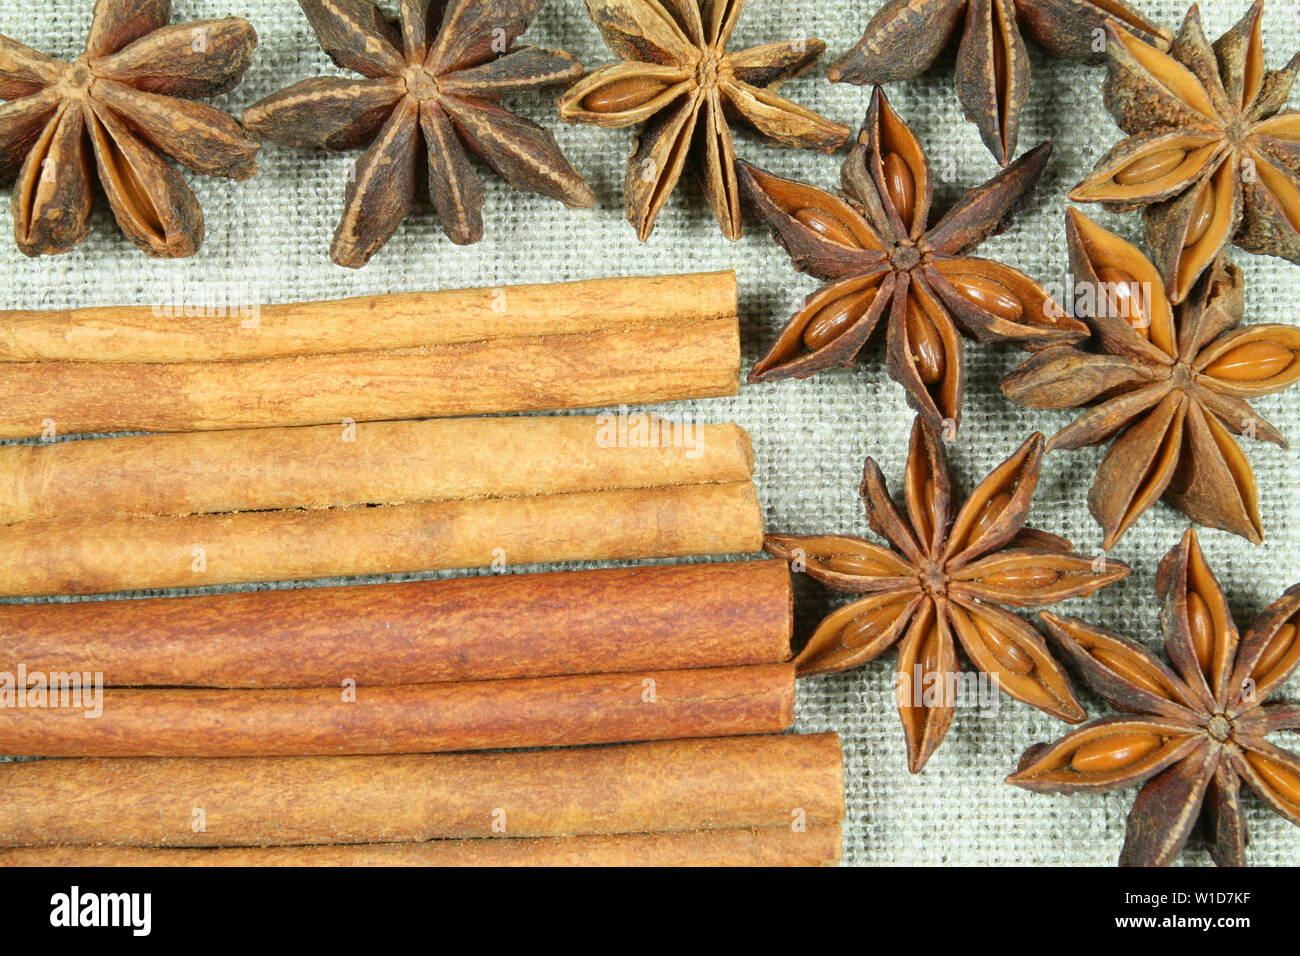 Anise stars and cinnamon sticks on flax background - Stock Image